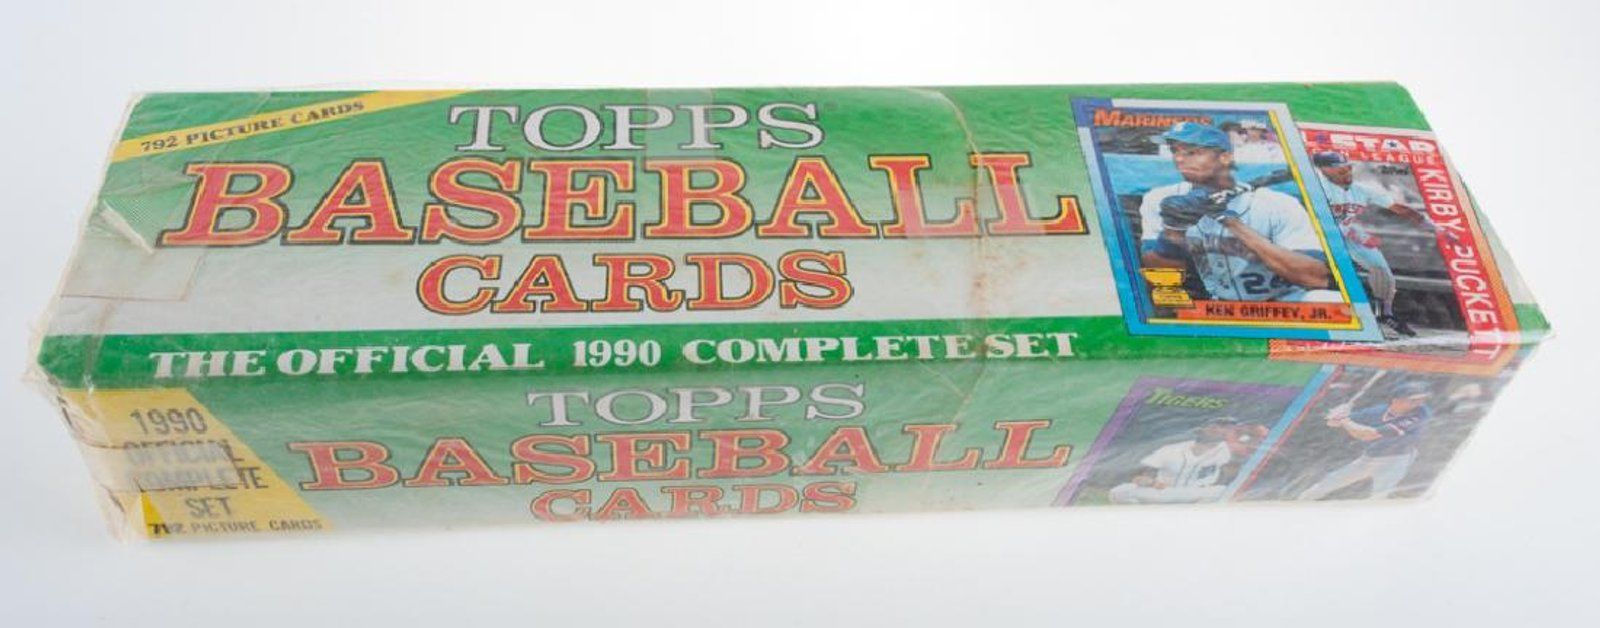 1990 Topps Baseball Cards Complete Set March 242018 Fine